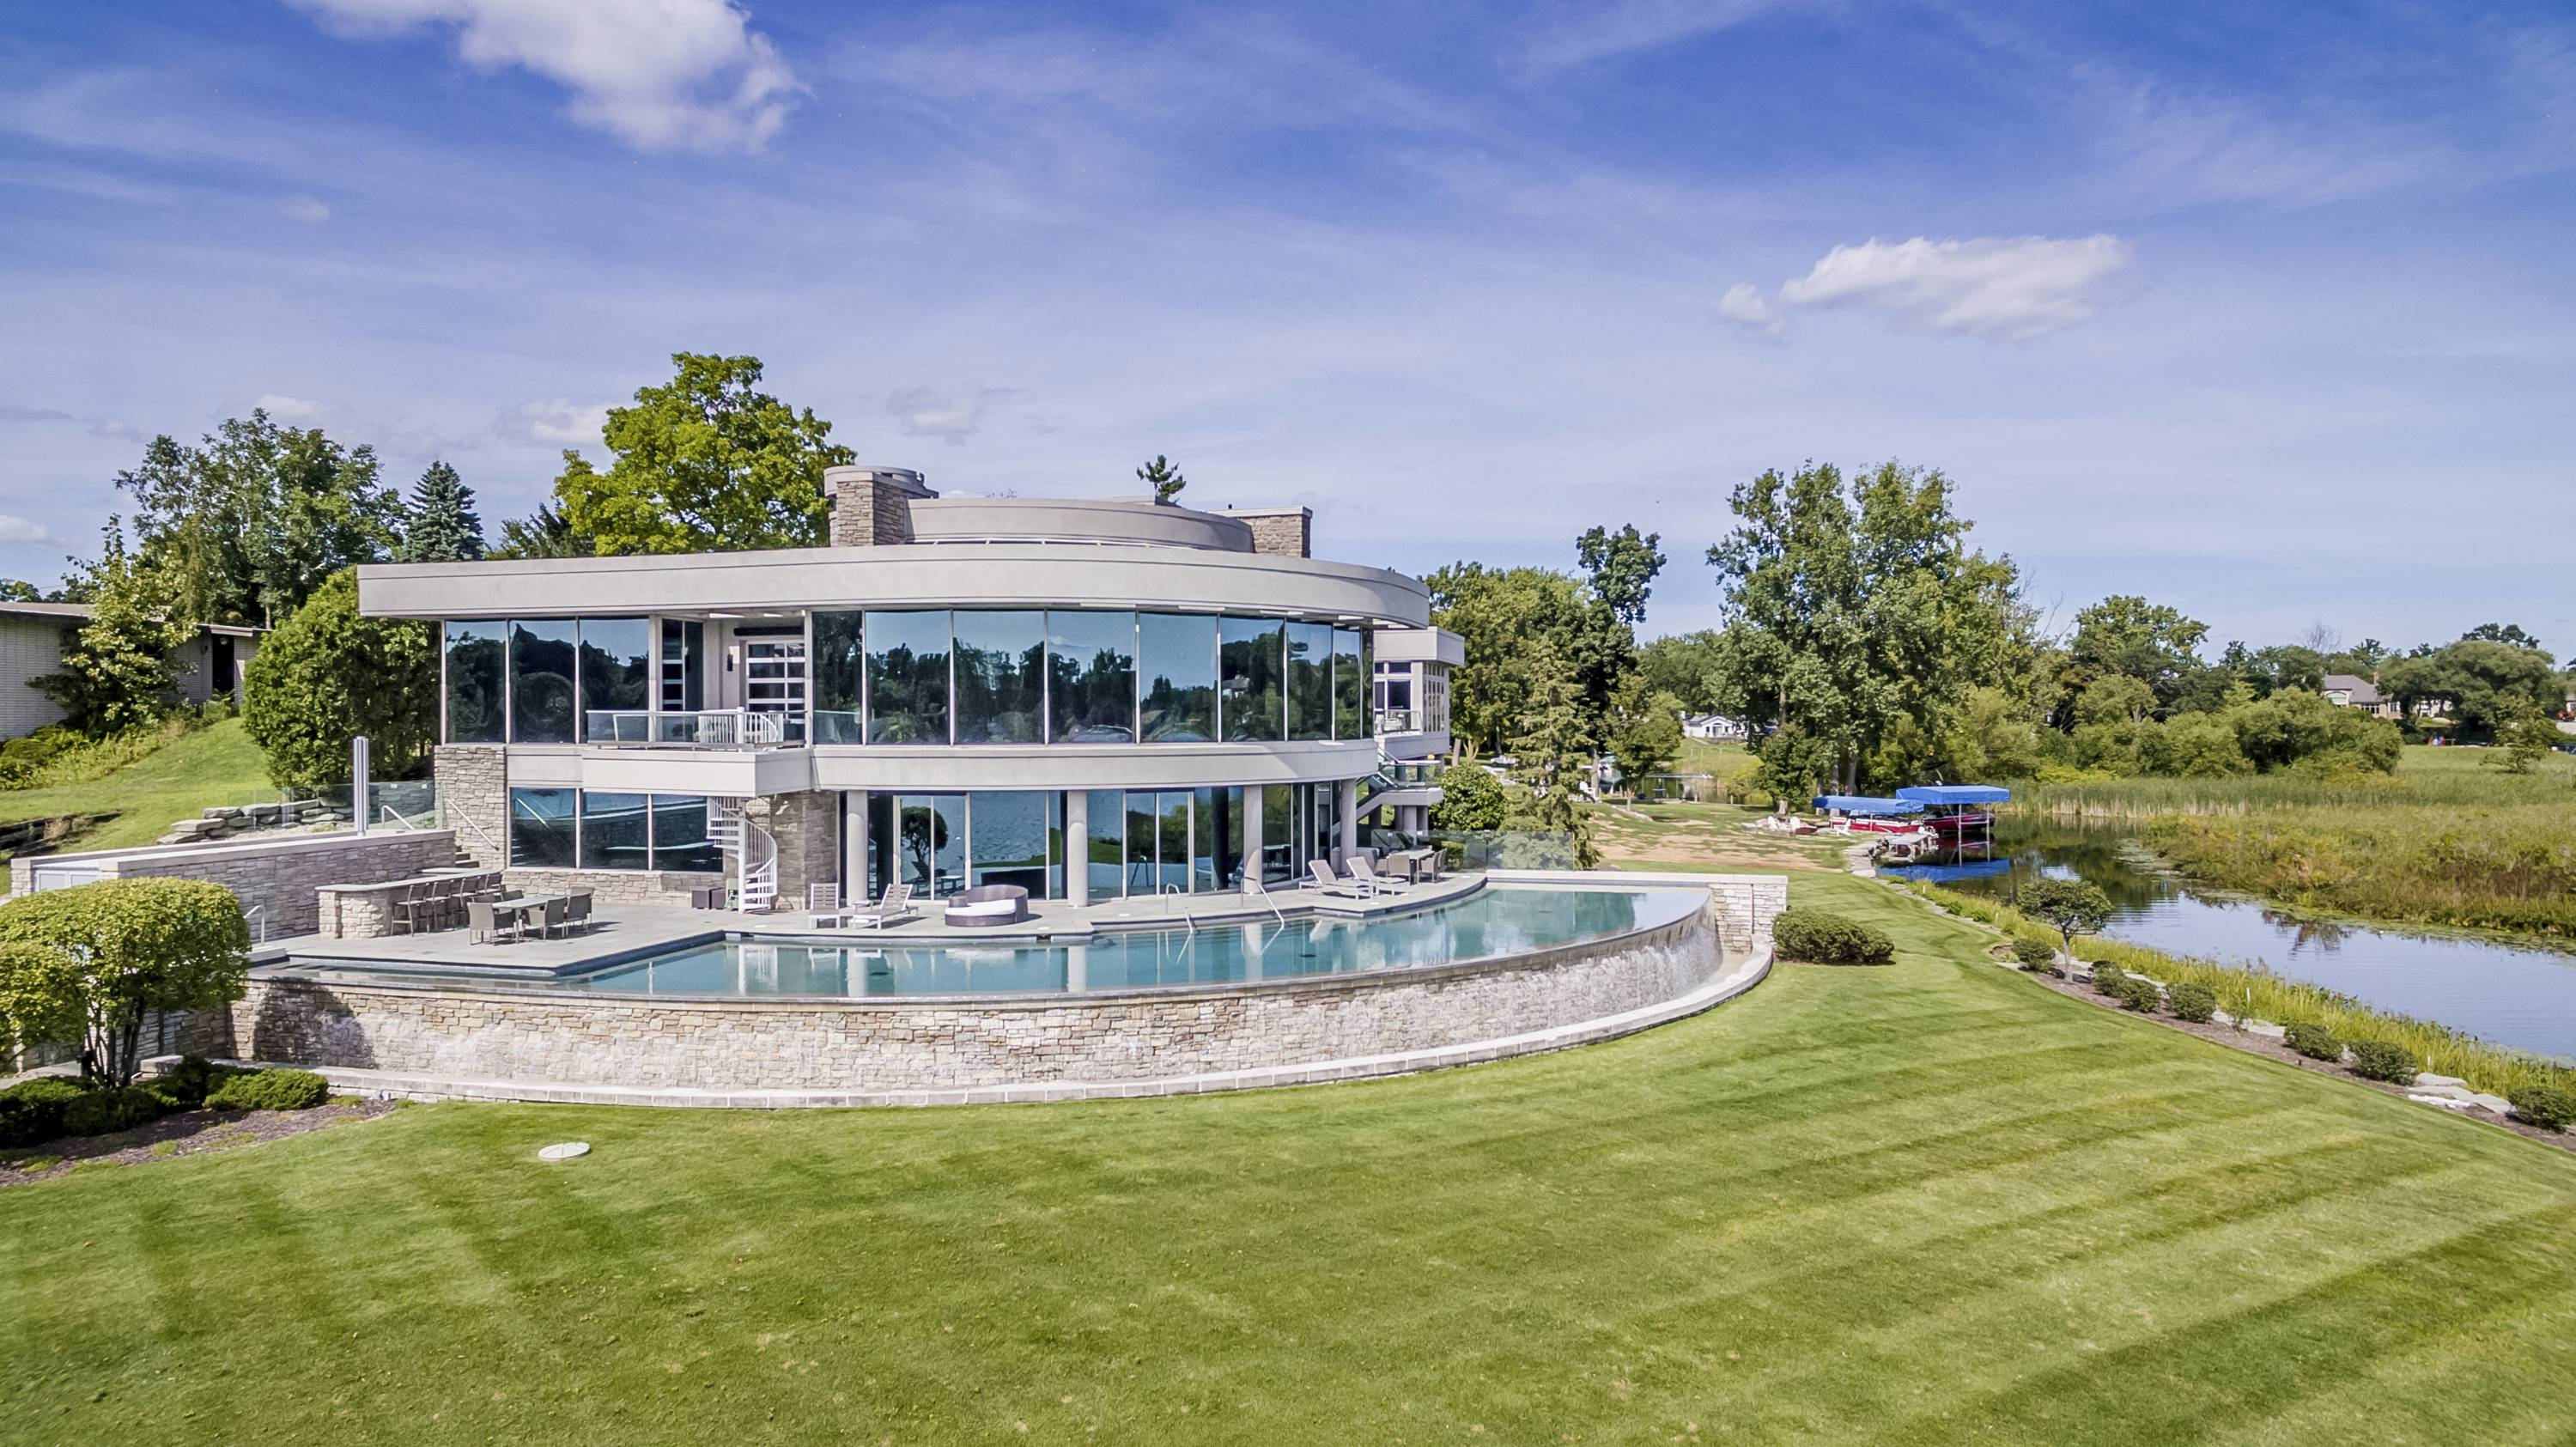 Matthew Stafford's Michigan Mansion, front exterior